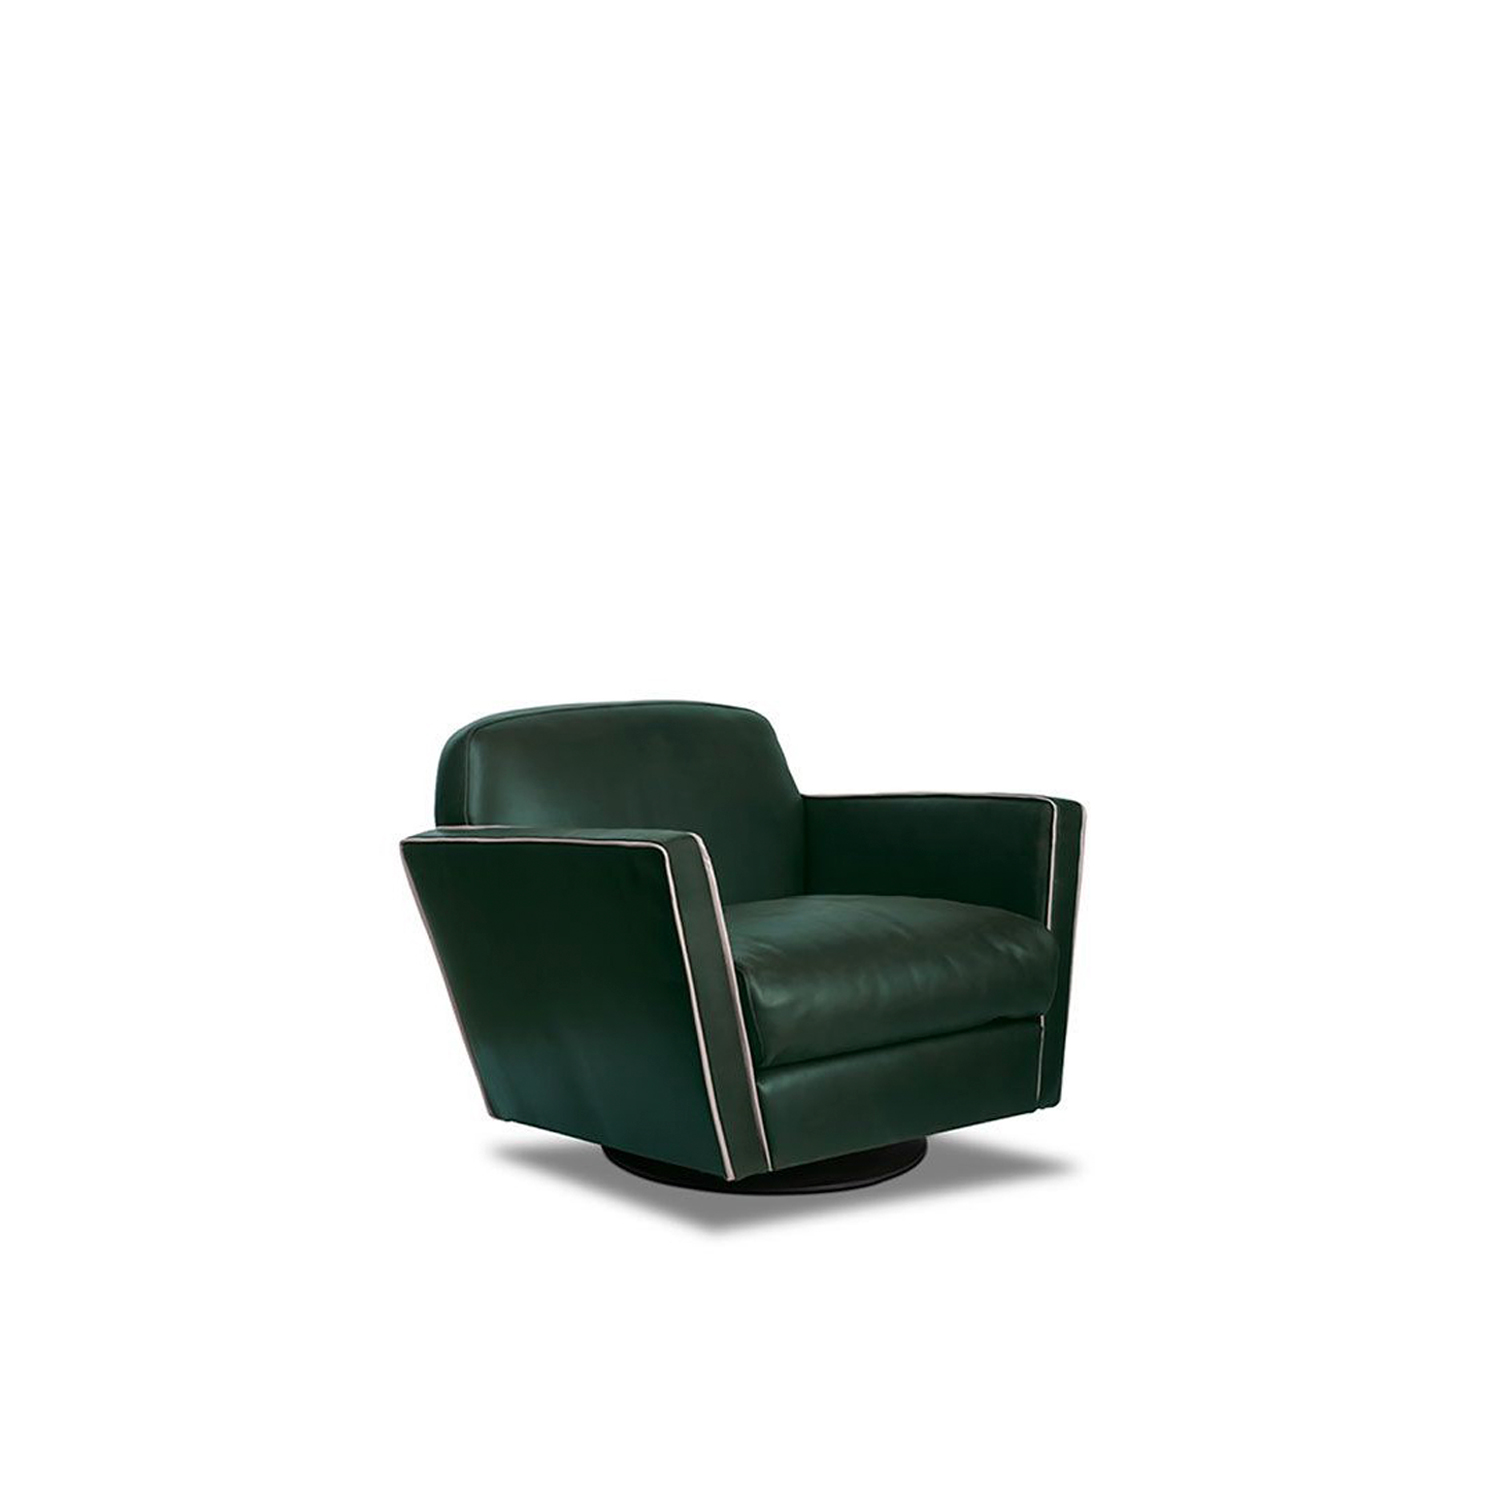 Capri Armchair - Structure in phenolic plywood and fir essence. Base with feet in semi-gloss black-stained beech or revolving base. Padding in differentiated density polyurethane foam, with acrylic fibre covering. Decorative piping in the same shade of leather. There is an armchair and revolving armchair avaliable.  Upon request, it is possible for the decorative profile to be in the other shades of leather shown in the catalogue. Each product is hand-made in Italy and upholstery can be customised upon request. For more information on leathers and materials please refer to the catalogue.   | Matter of Stuff